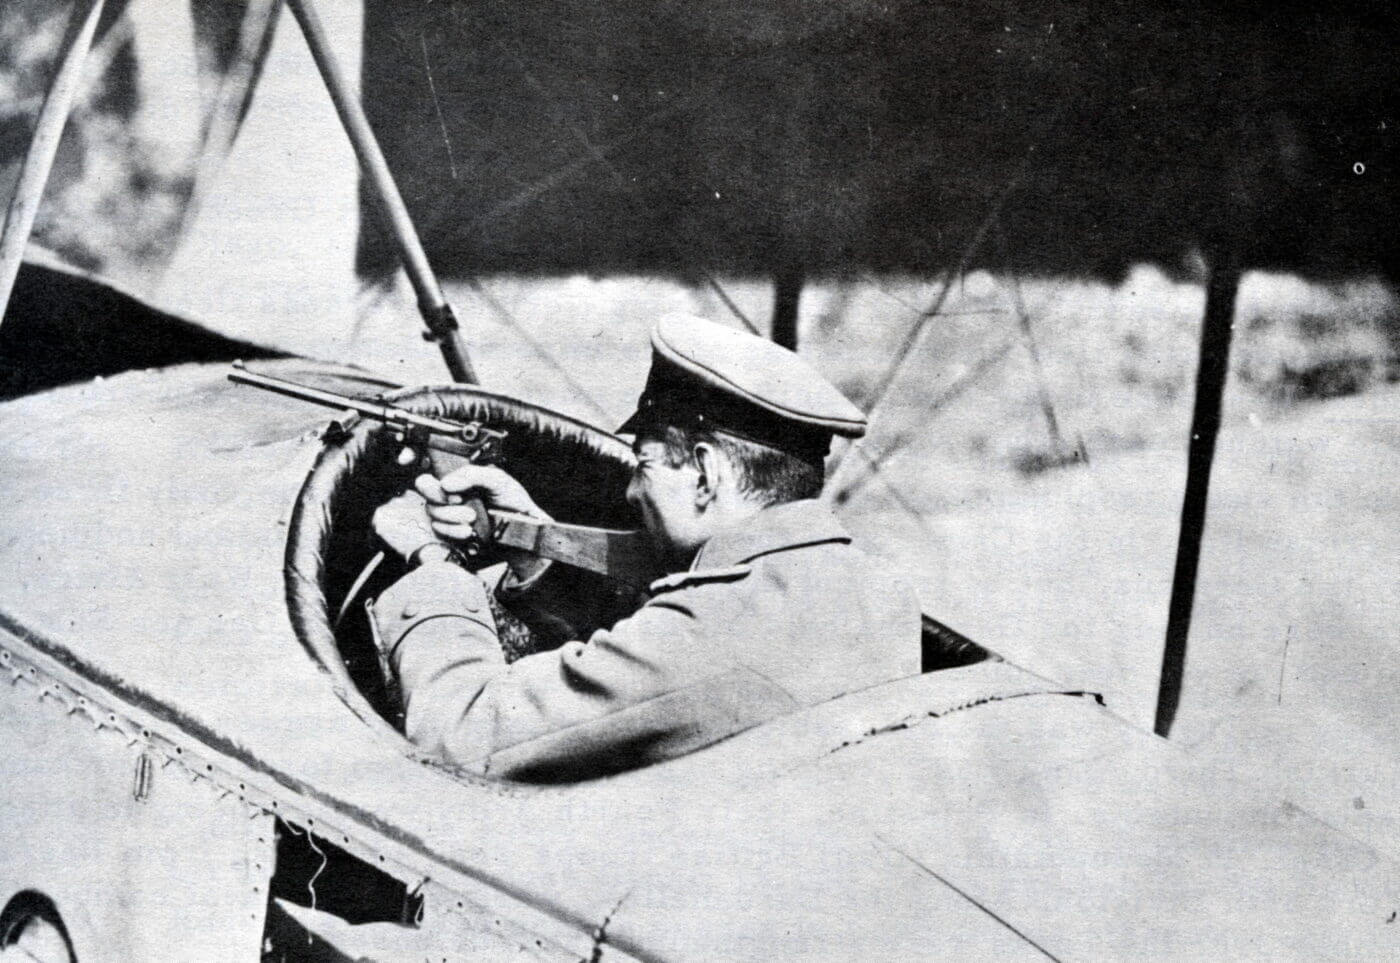 Luger being used by pilot in early airplane